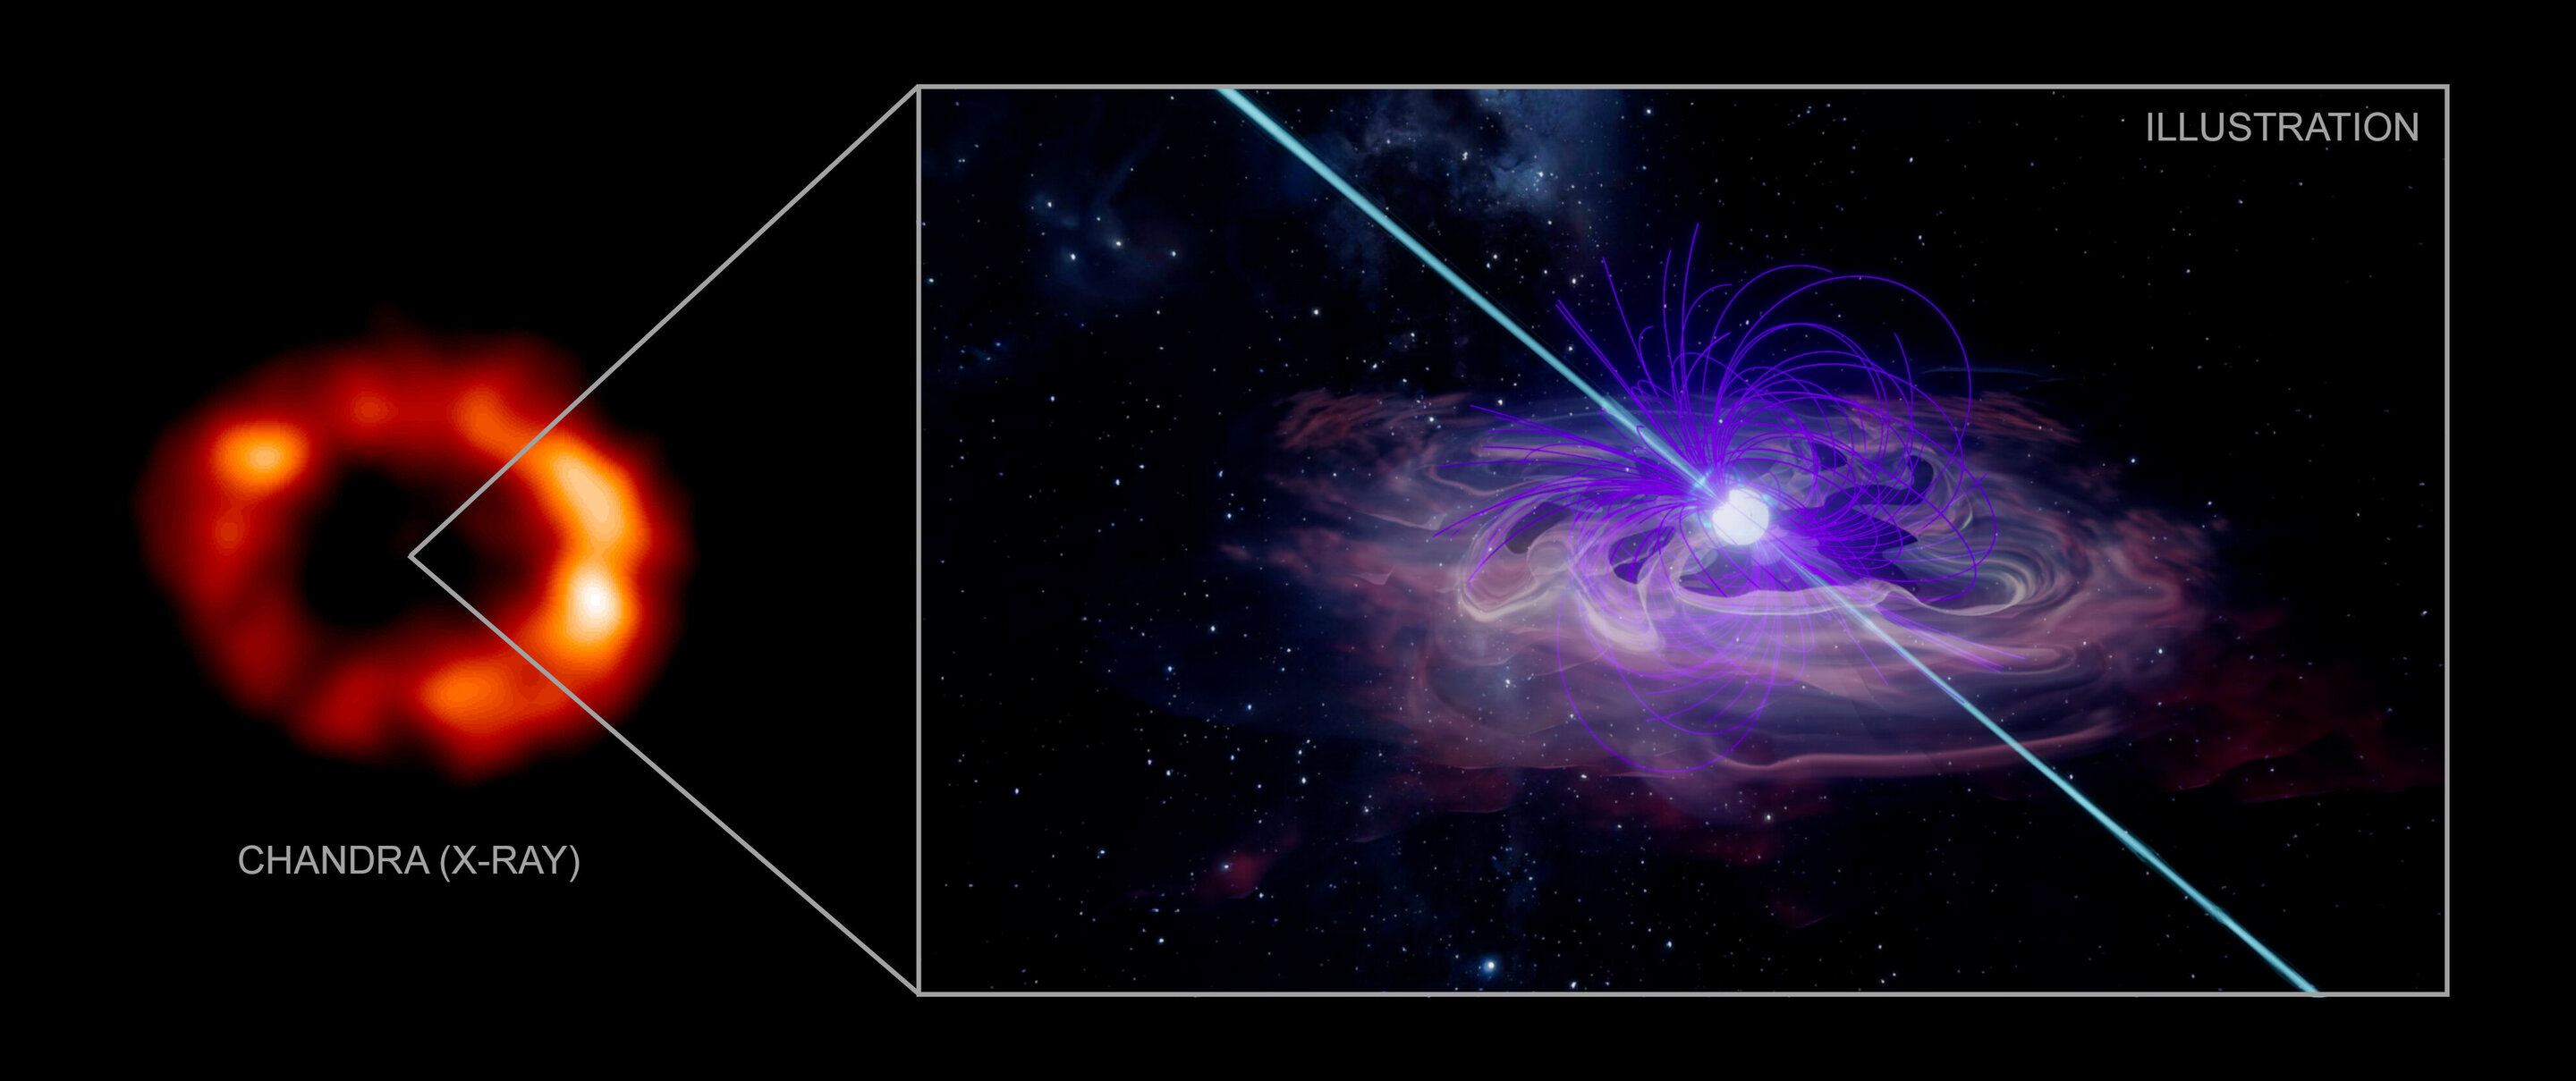 Reclusive neutron star may have been found in famous supernova - Phys.org